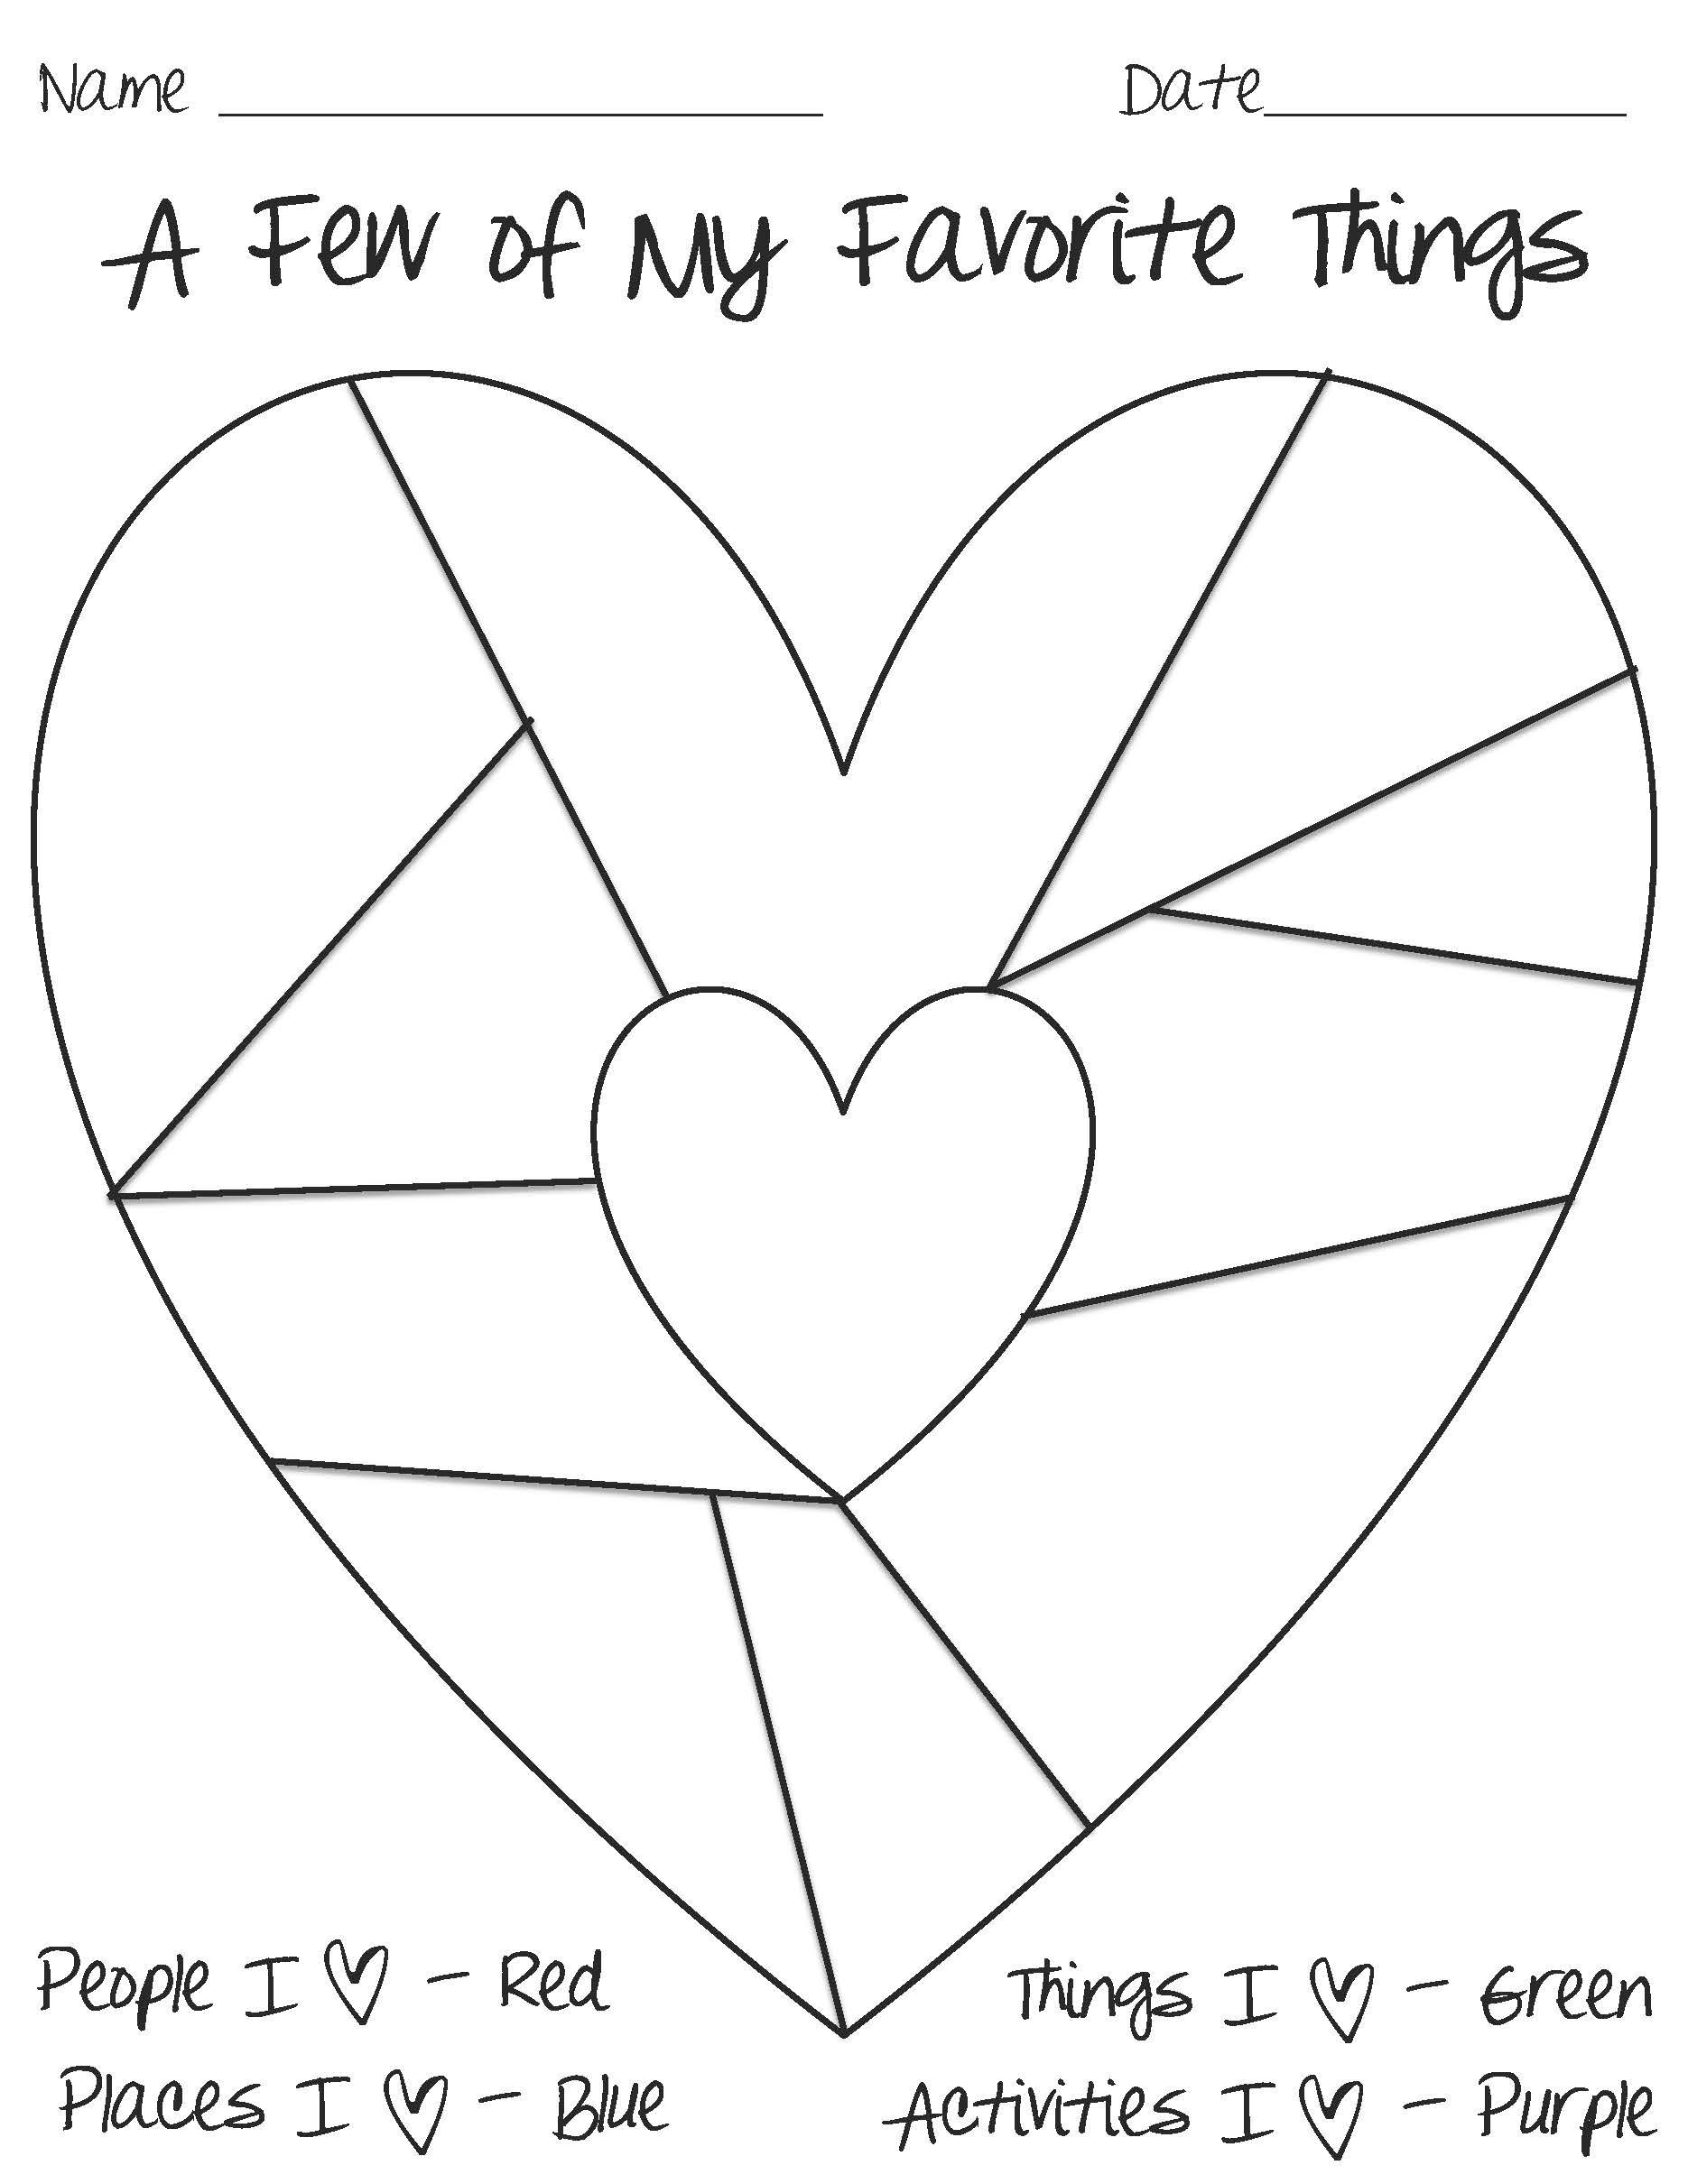 Heart Map Template | Good Resources And Ideas For Teachers intended for A Few Of My Favorite Things Template